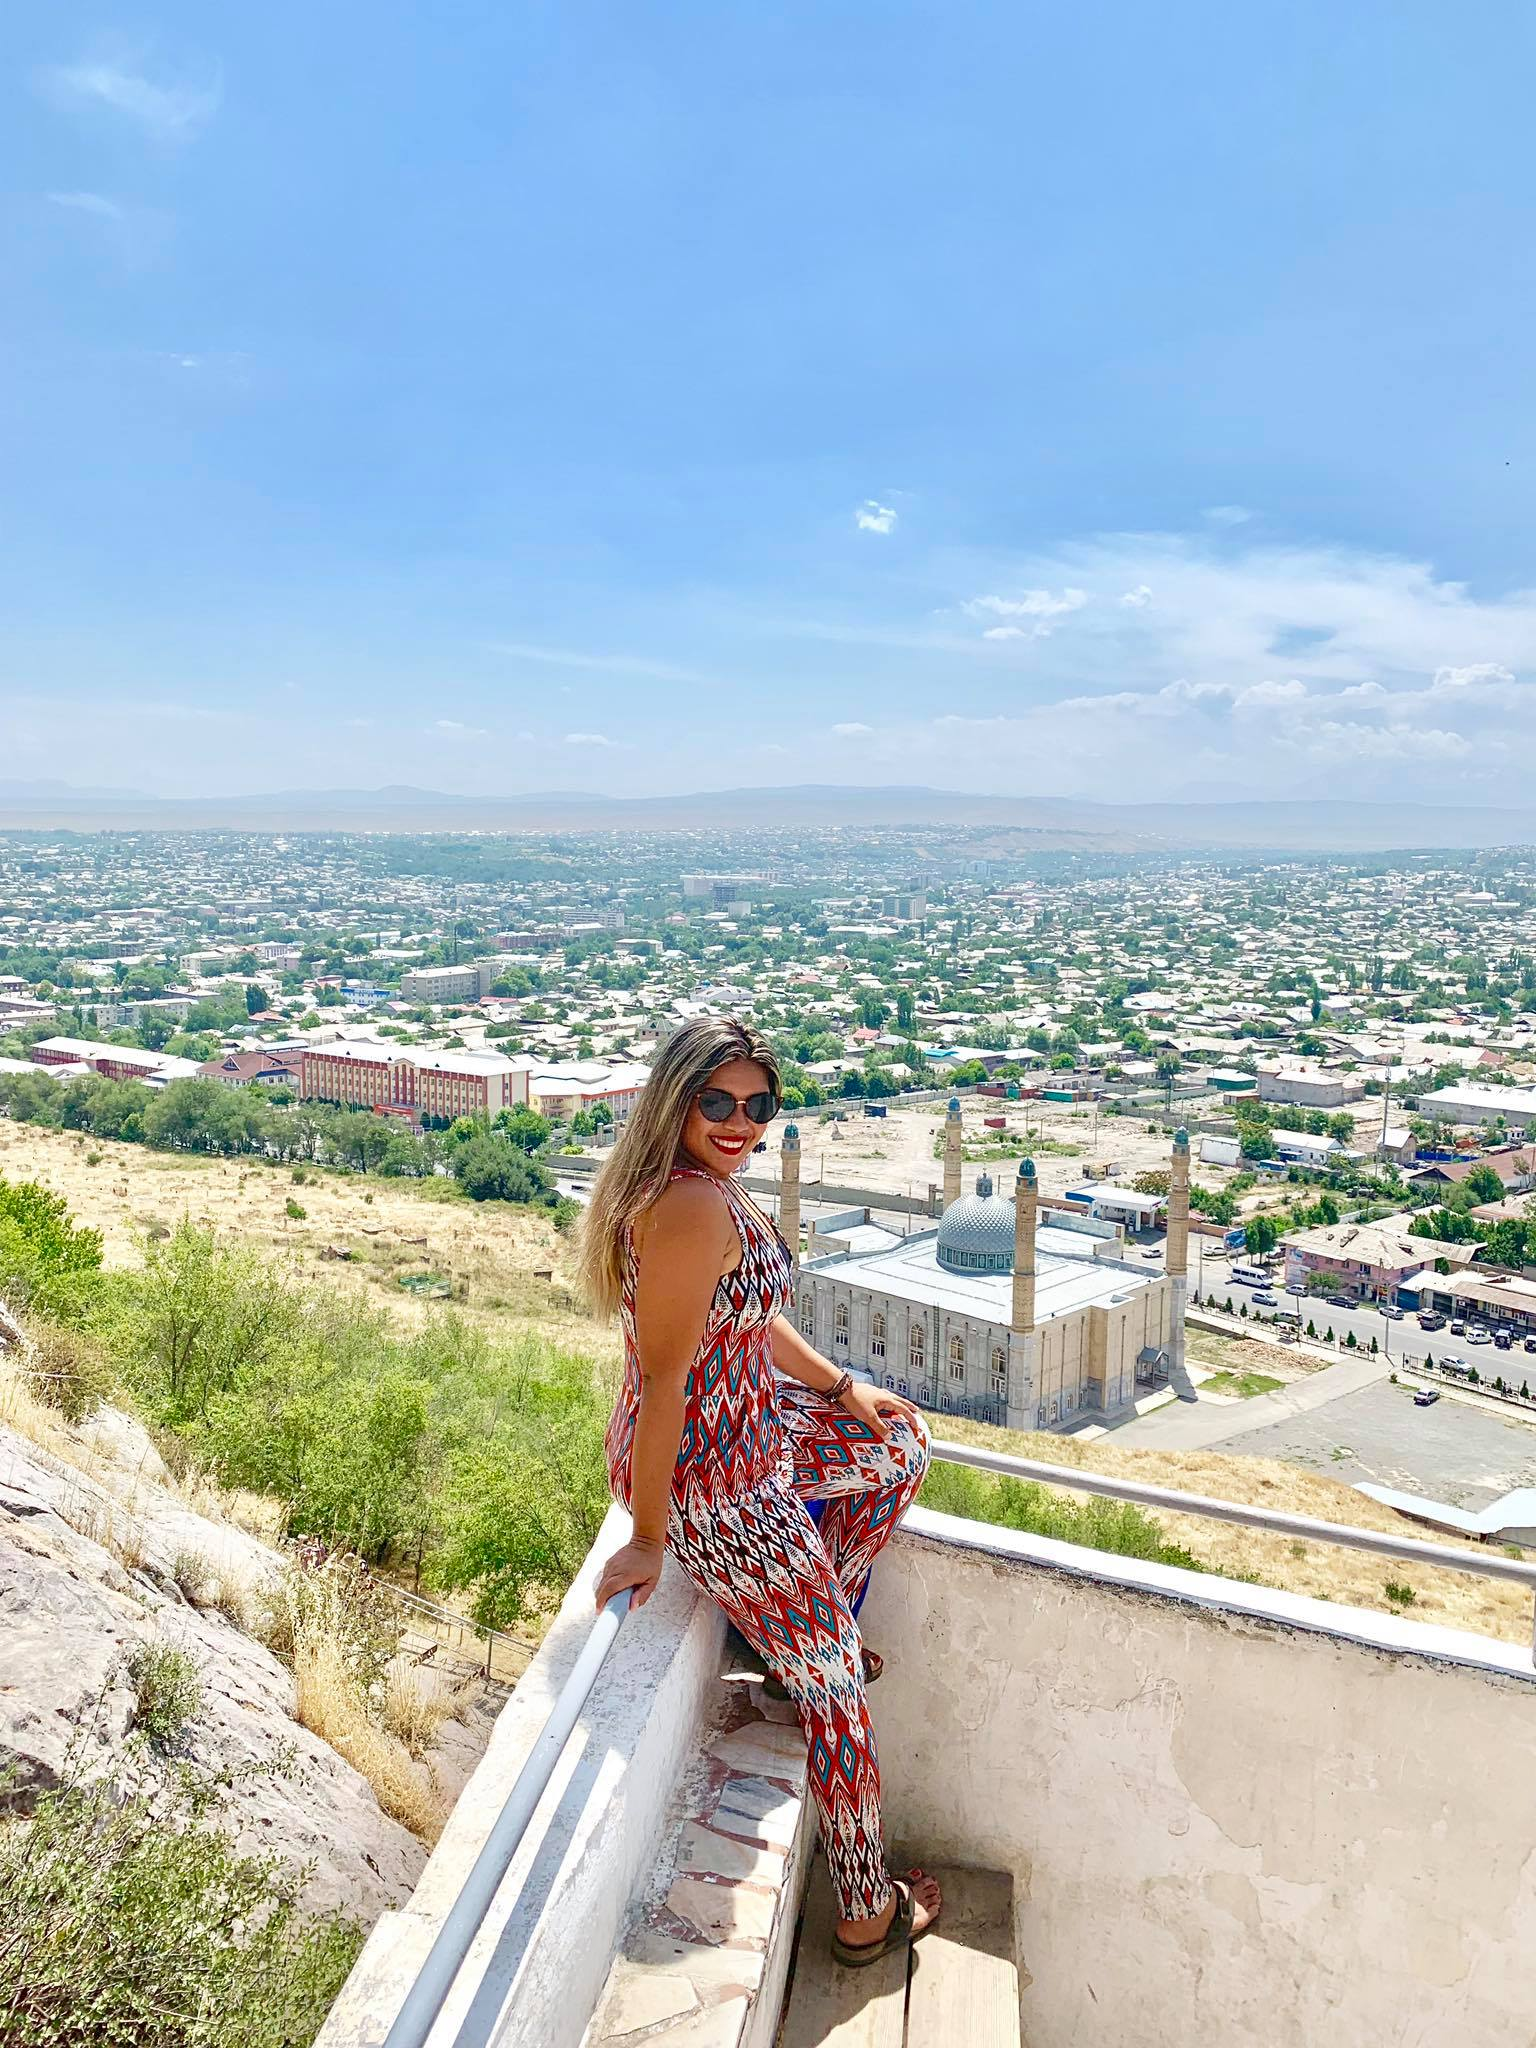 Kach Solo Travels in 2019 Exploring KYRGYZSTAN with Destination Pamir2.jpg